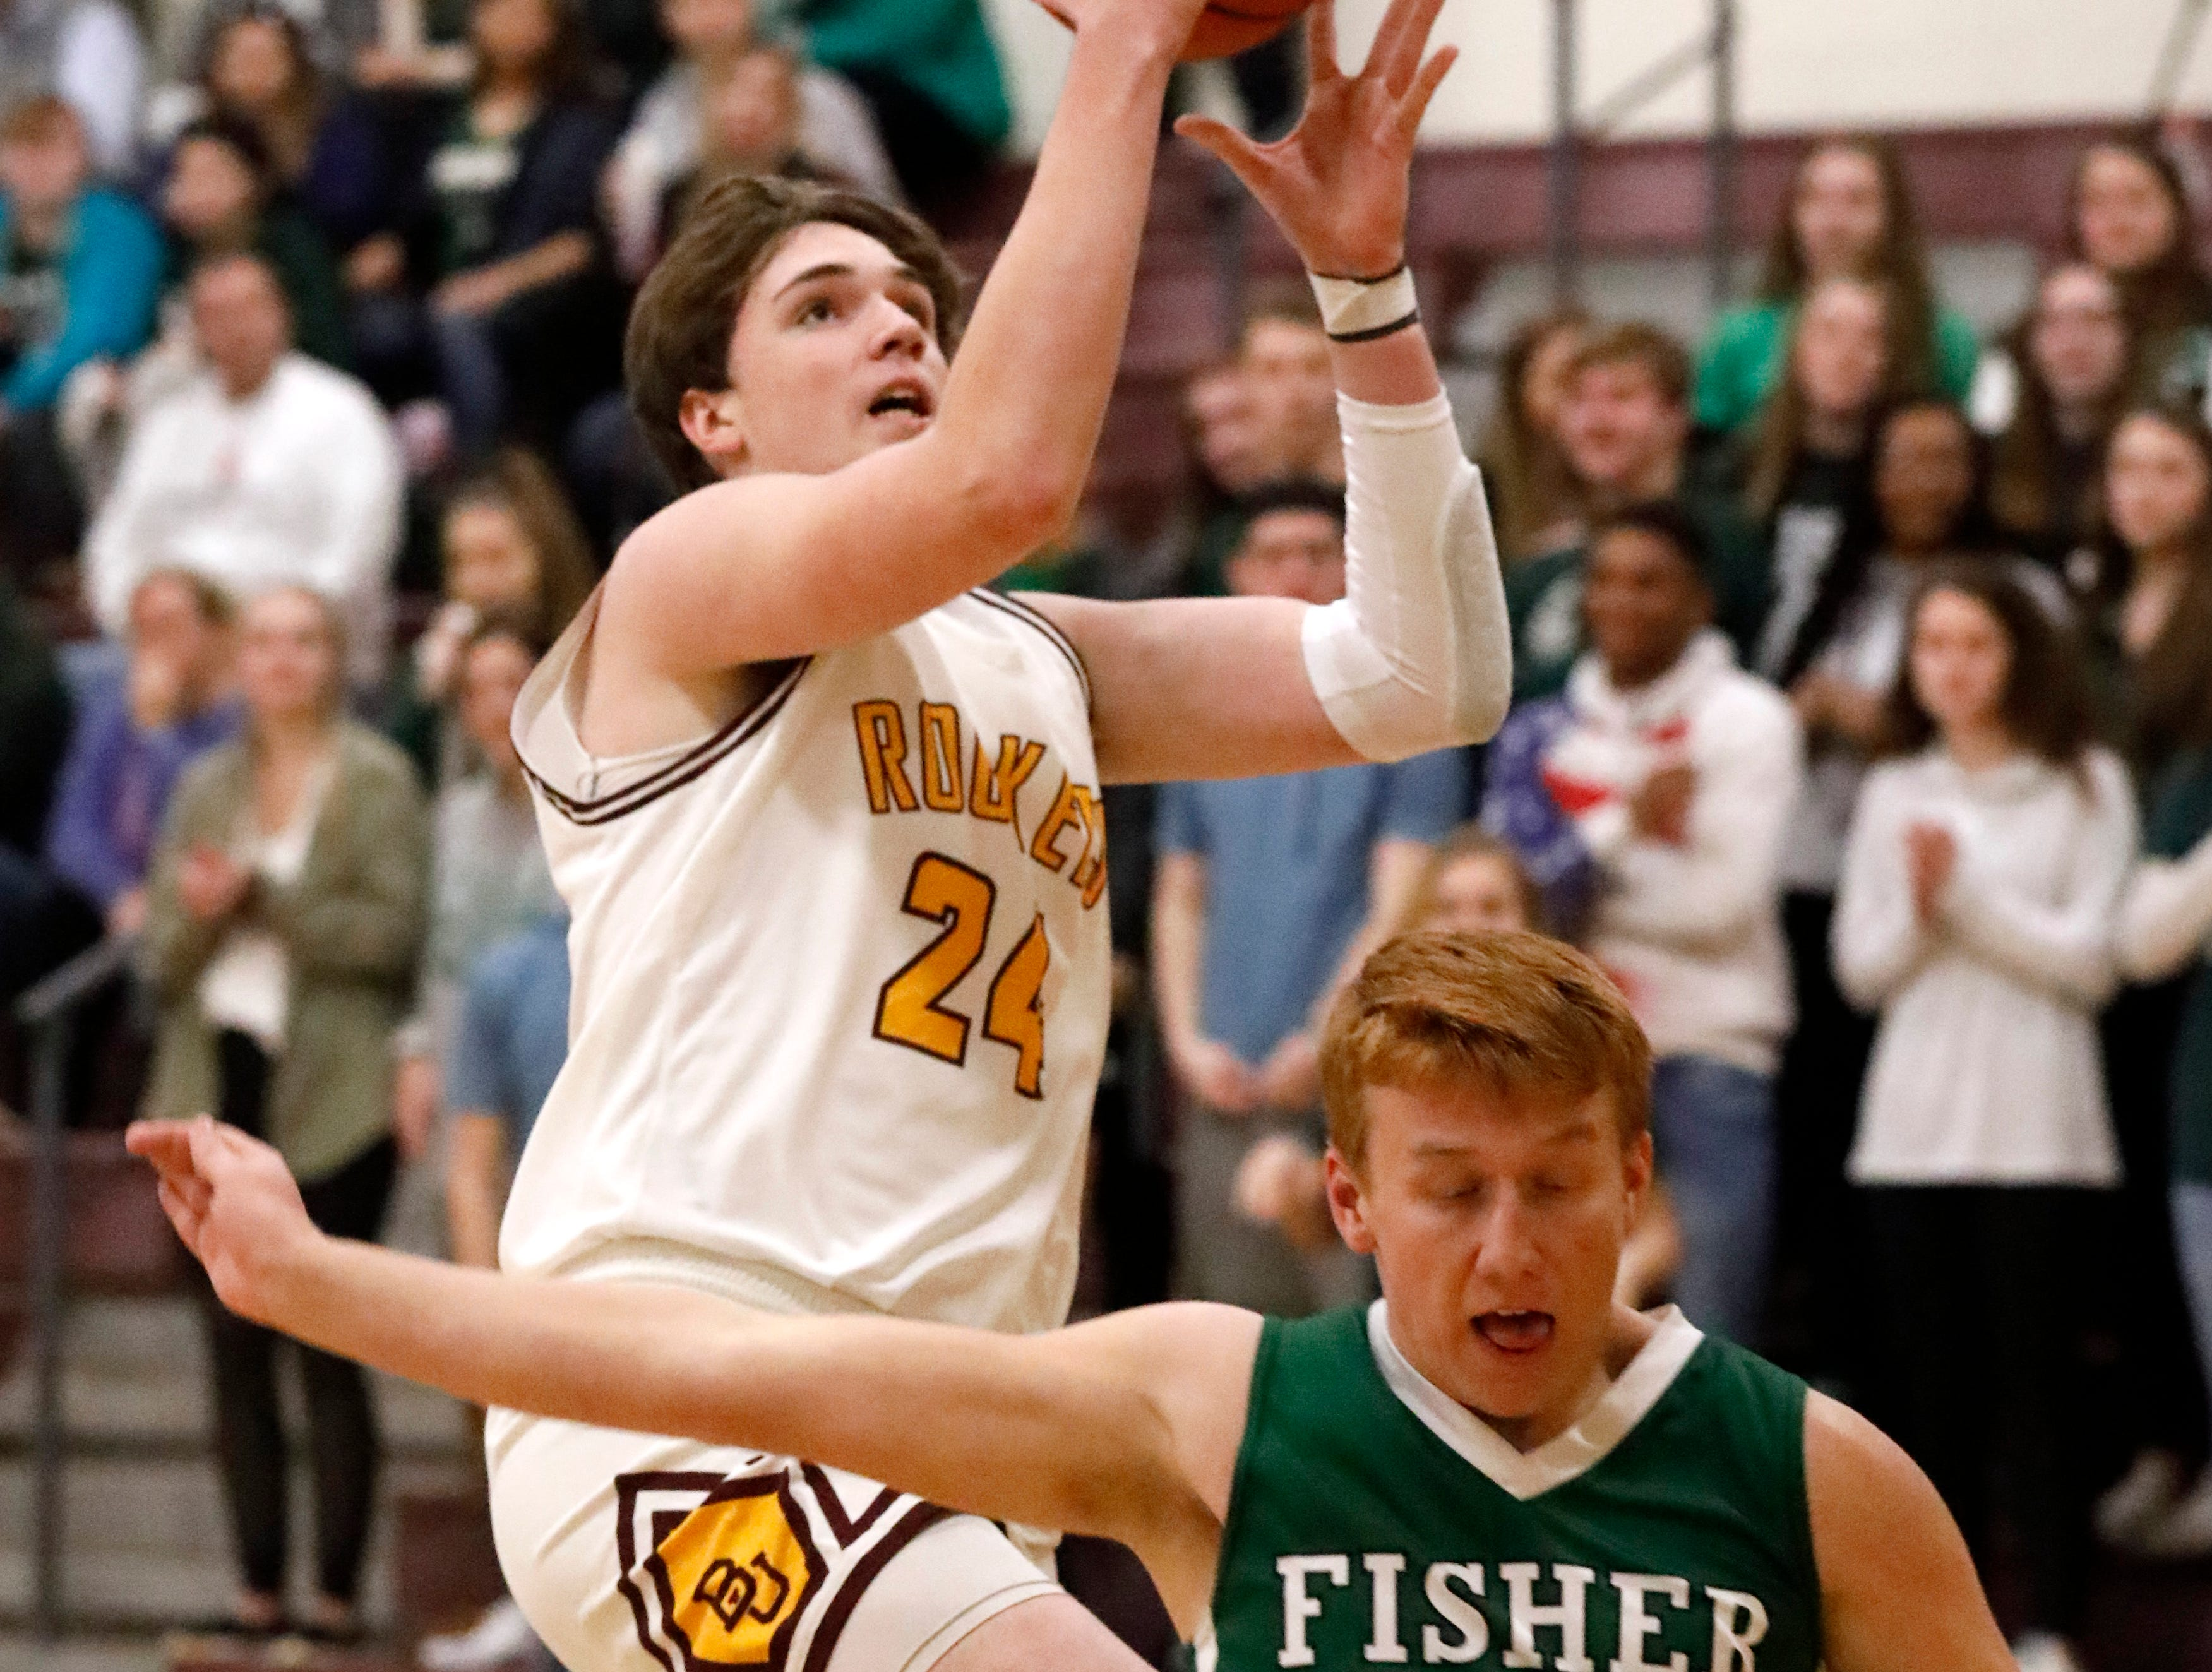 Berne Union's Brock Unger goes up for a shot during Tuesday night's game, Jan. 22, 2019, against Fisher Catholic's Carter Brady at Berne Union High School in Sugar Grove. The Rockets defeated the Irish 58-49.